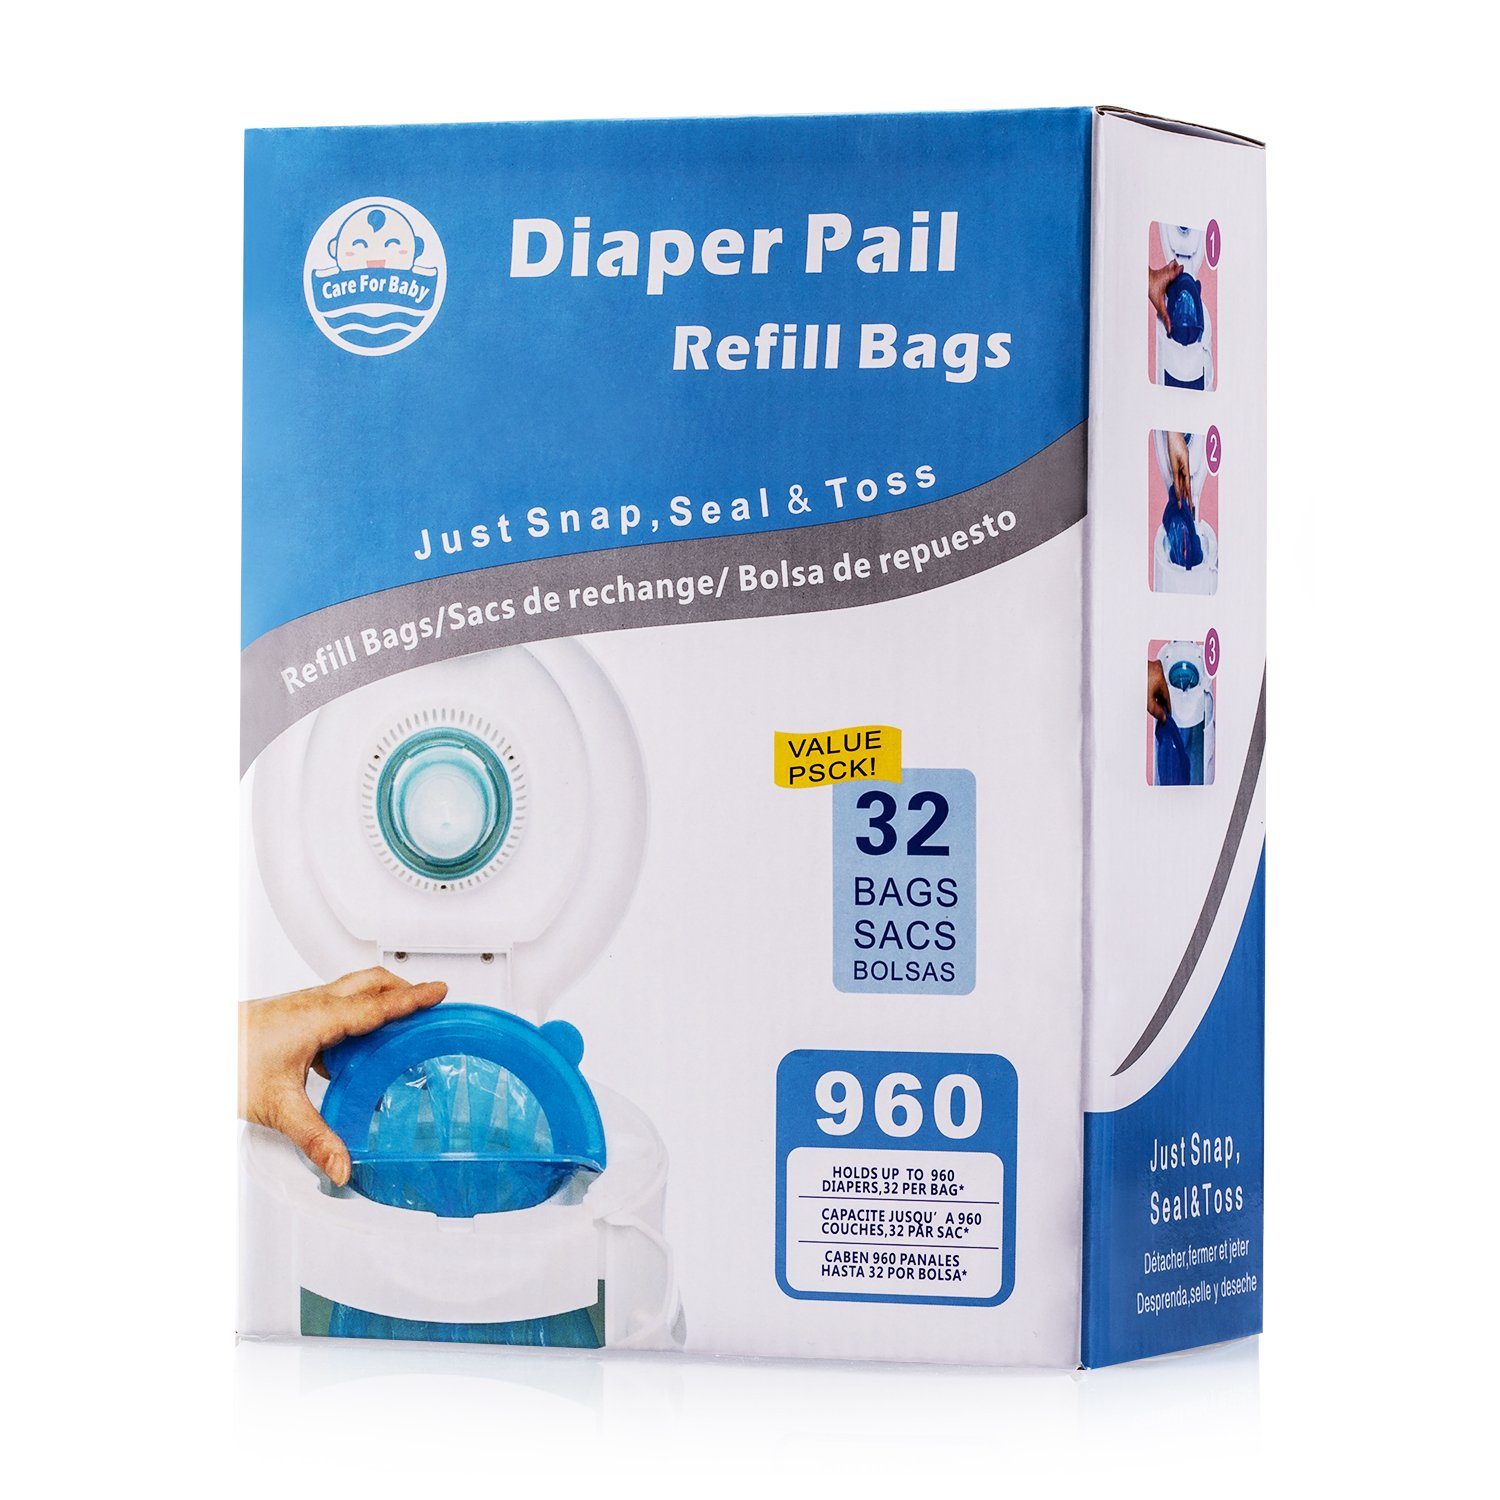 Diaper Pail Refill Bags (960 Counts) Fully Compatible with Arm&Hammer Disposal System - 32 Bags